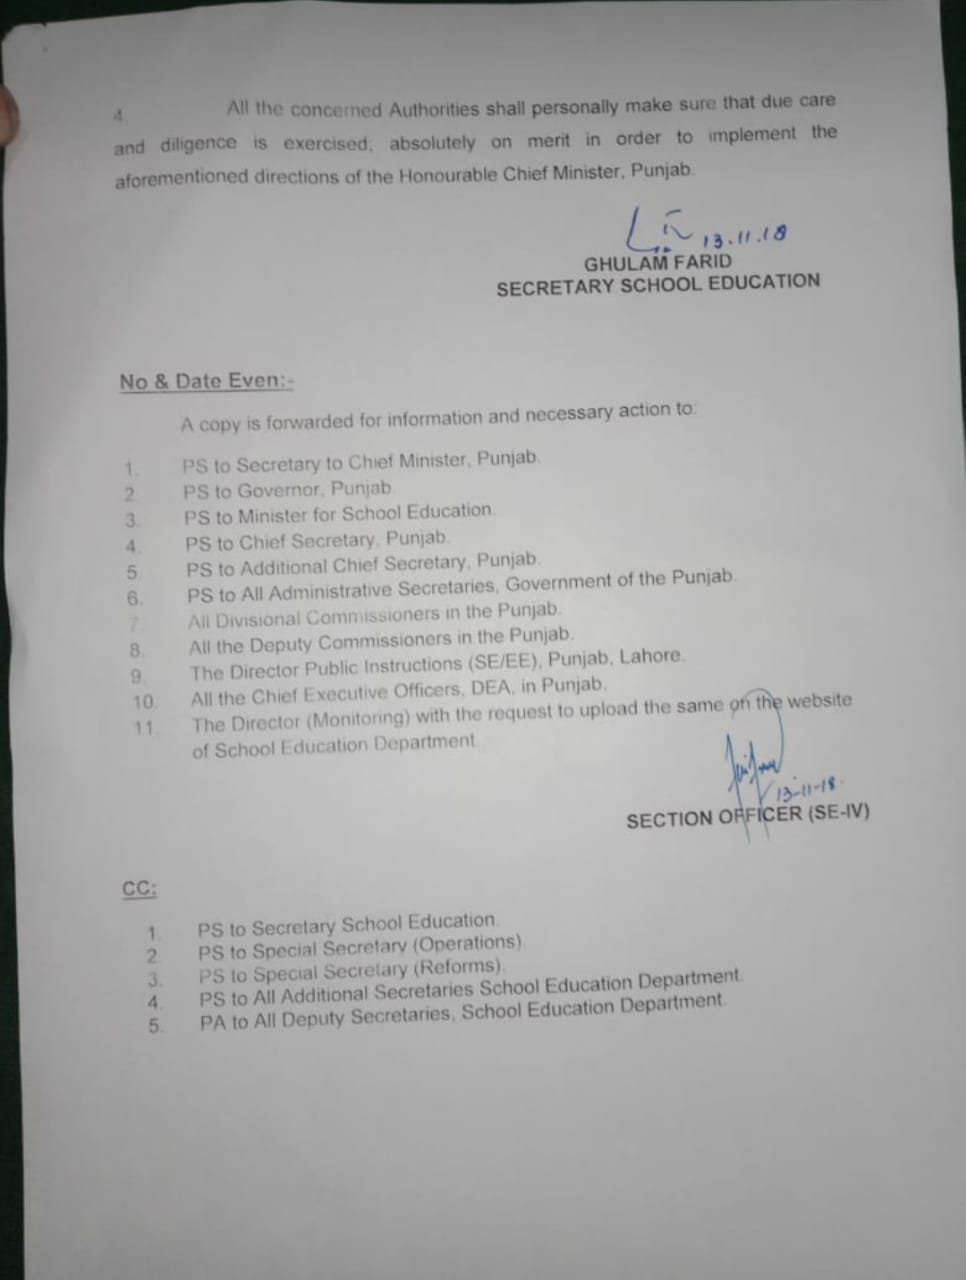 POSTING TRANSFER OF TEACHERS IN THE SCHOOL EDUCATION DEPARTMENT IN RELAXATION OF BAN